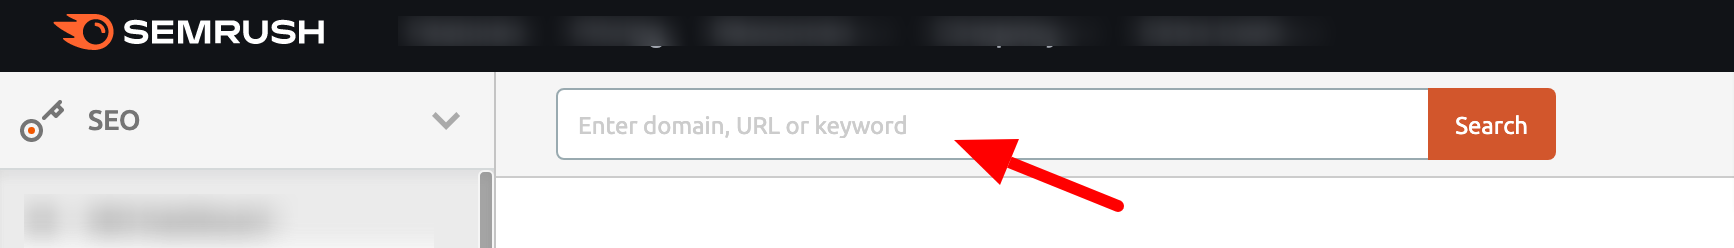 How to do keyword research with SEMrush